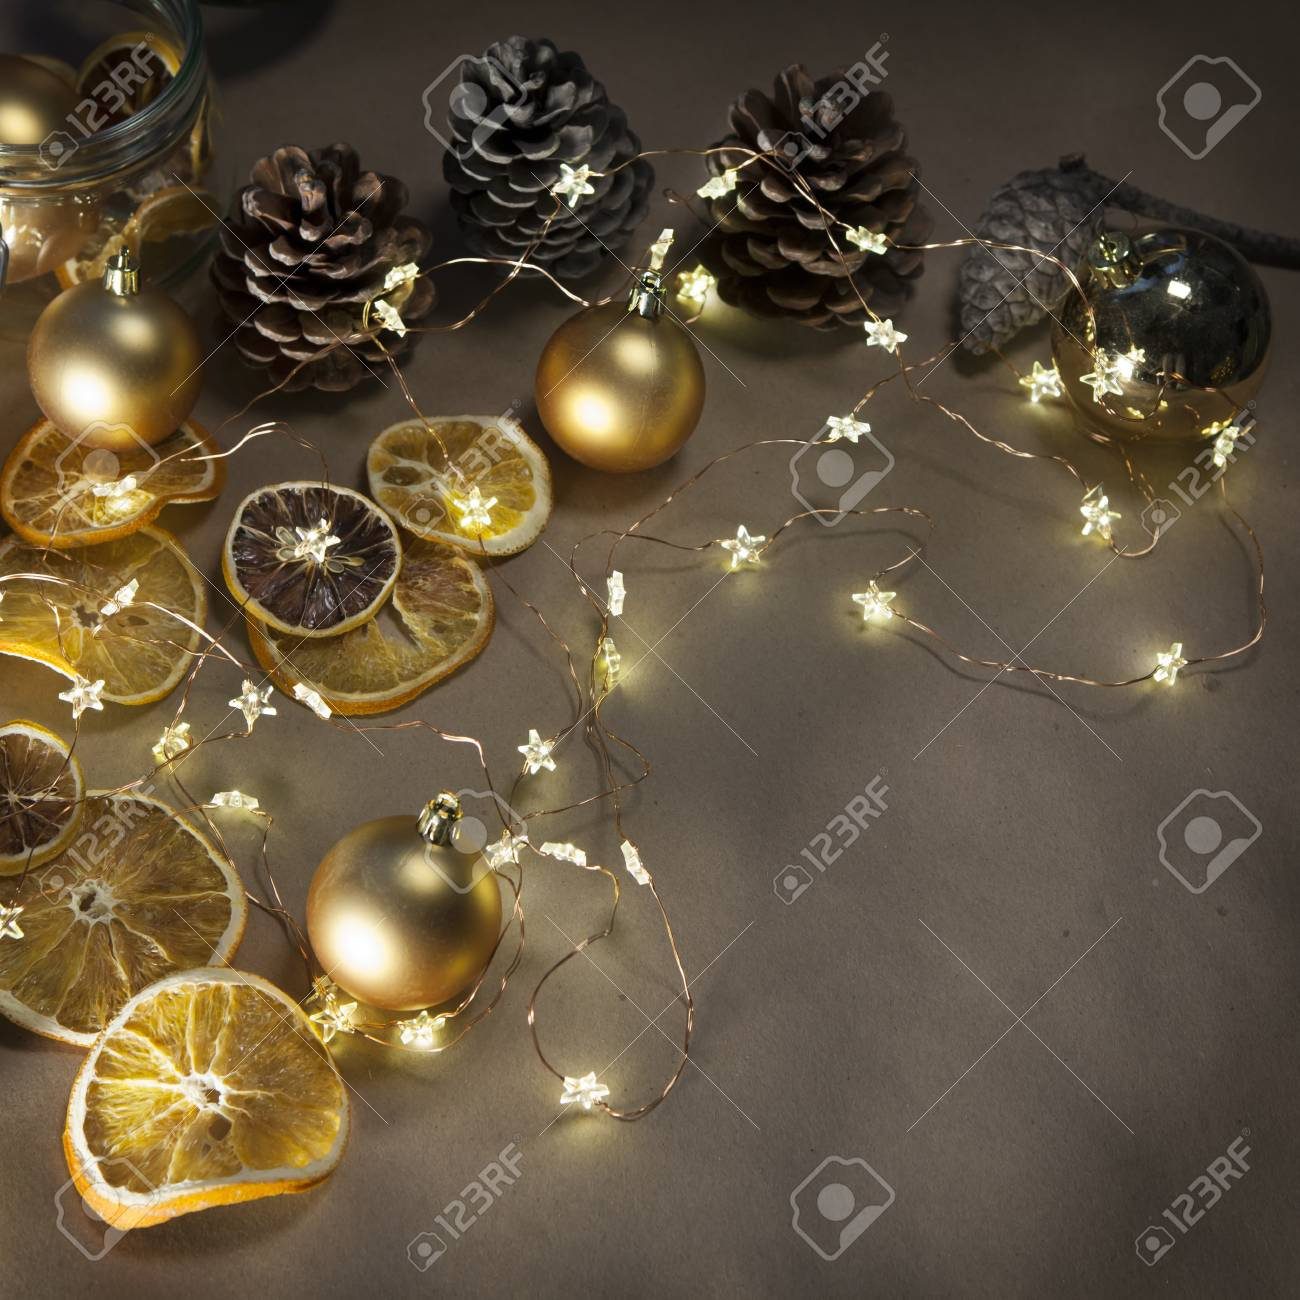 Garland With White Christmas Tree Lights With Rustic Wood Background